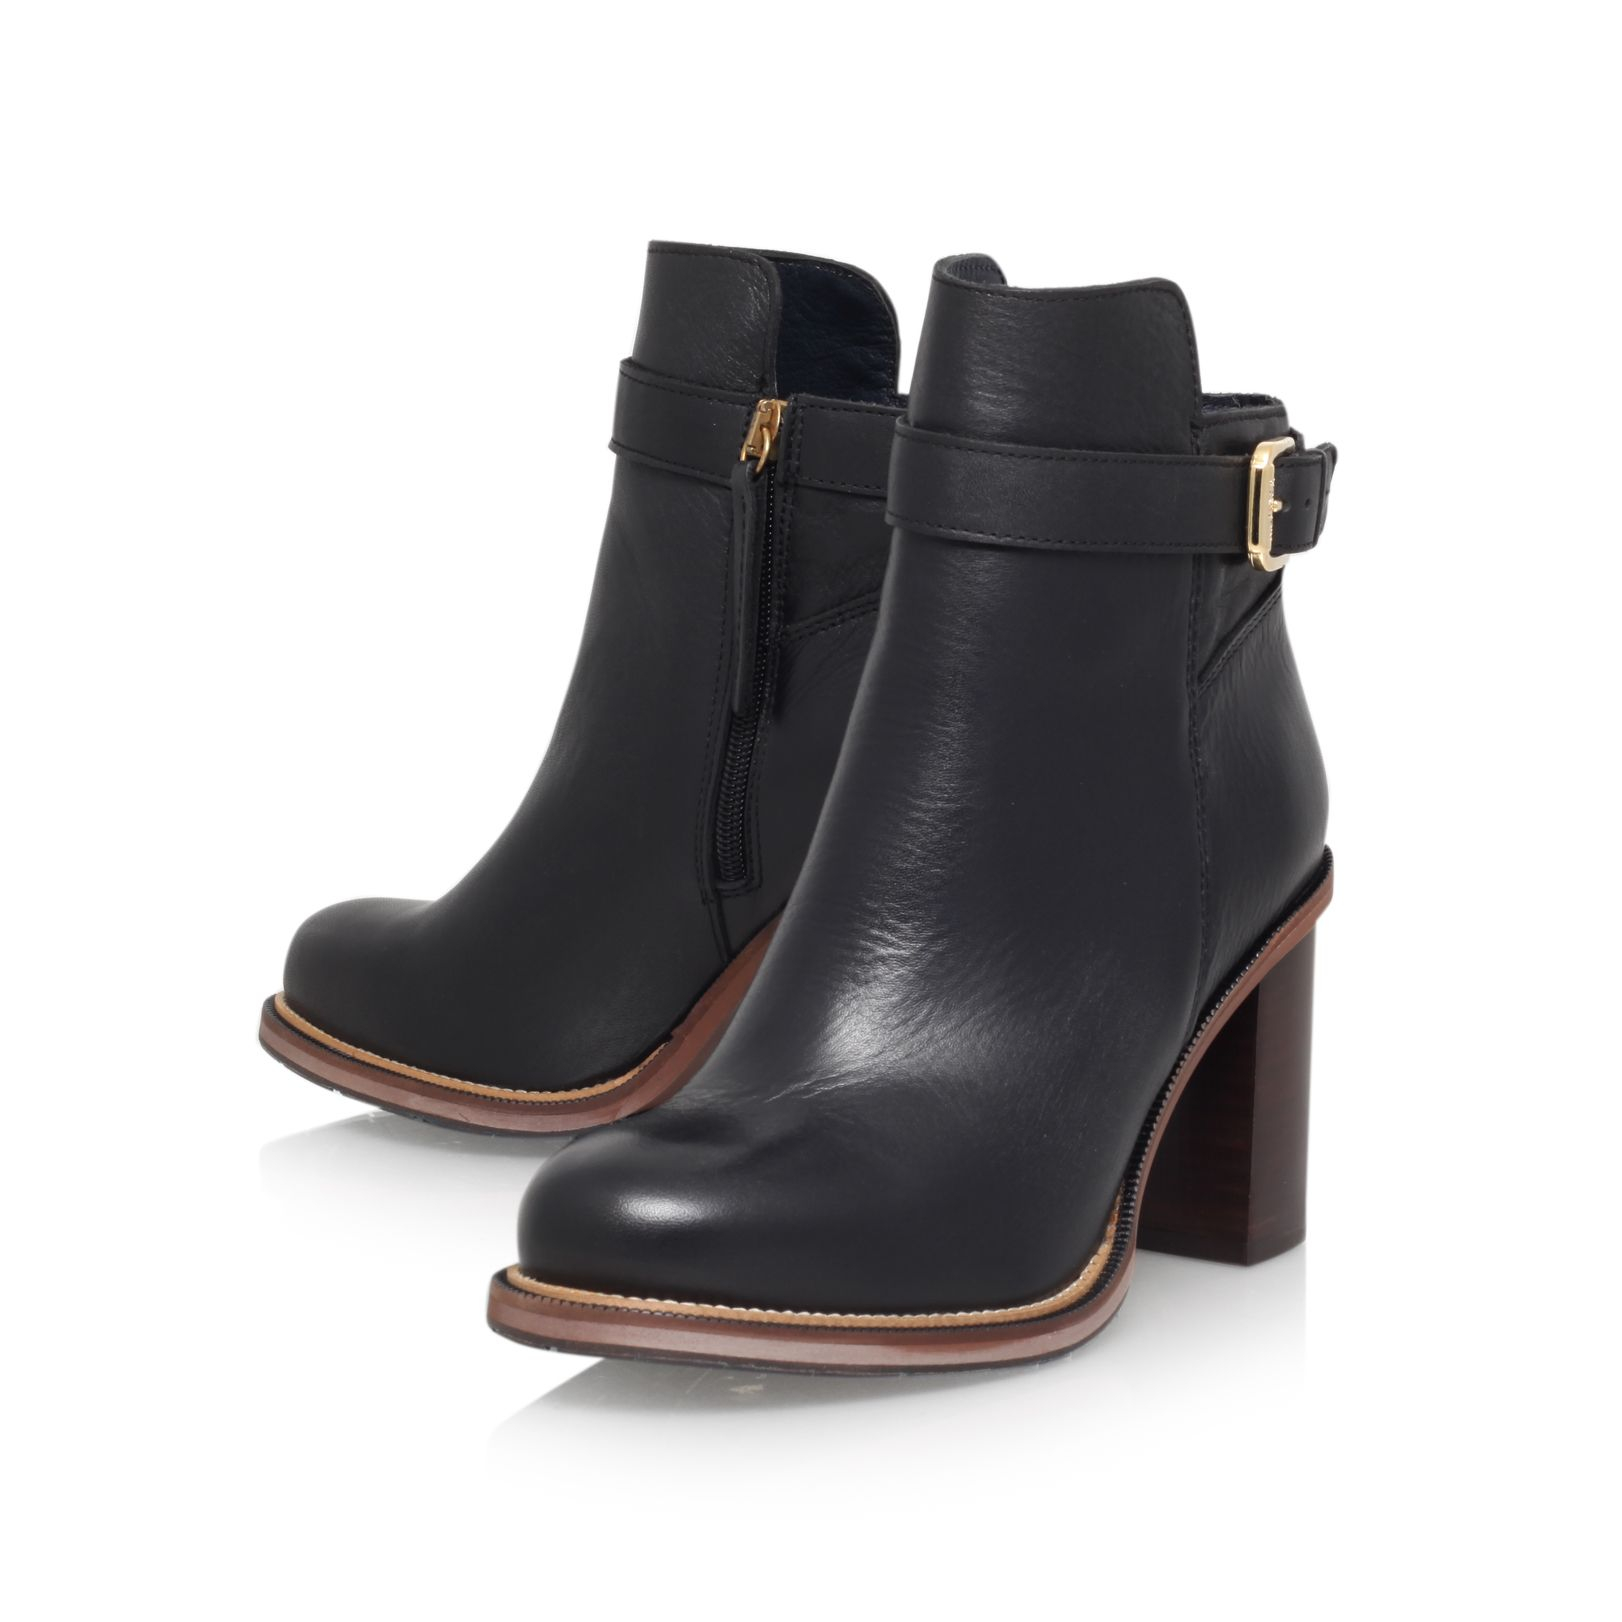 lyst tommy hilfiger leather high heel ankle boot in black. Black Bedroom Furniture Sets. Home Design Ideas